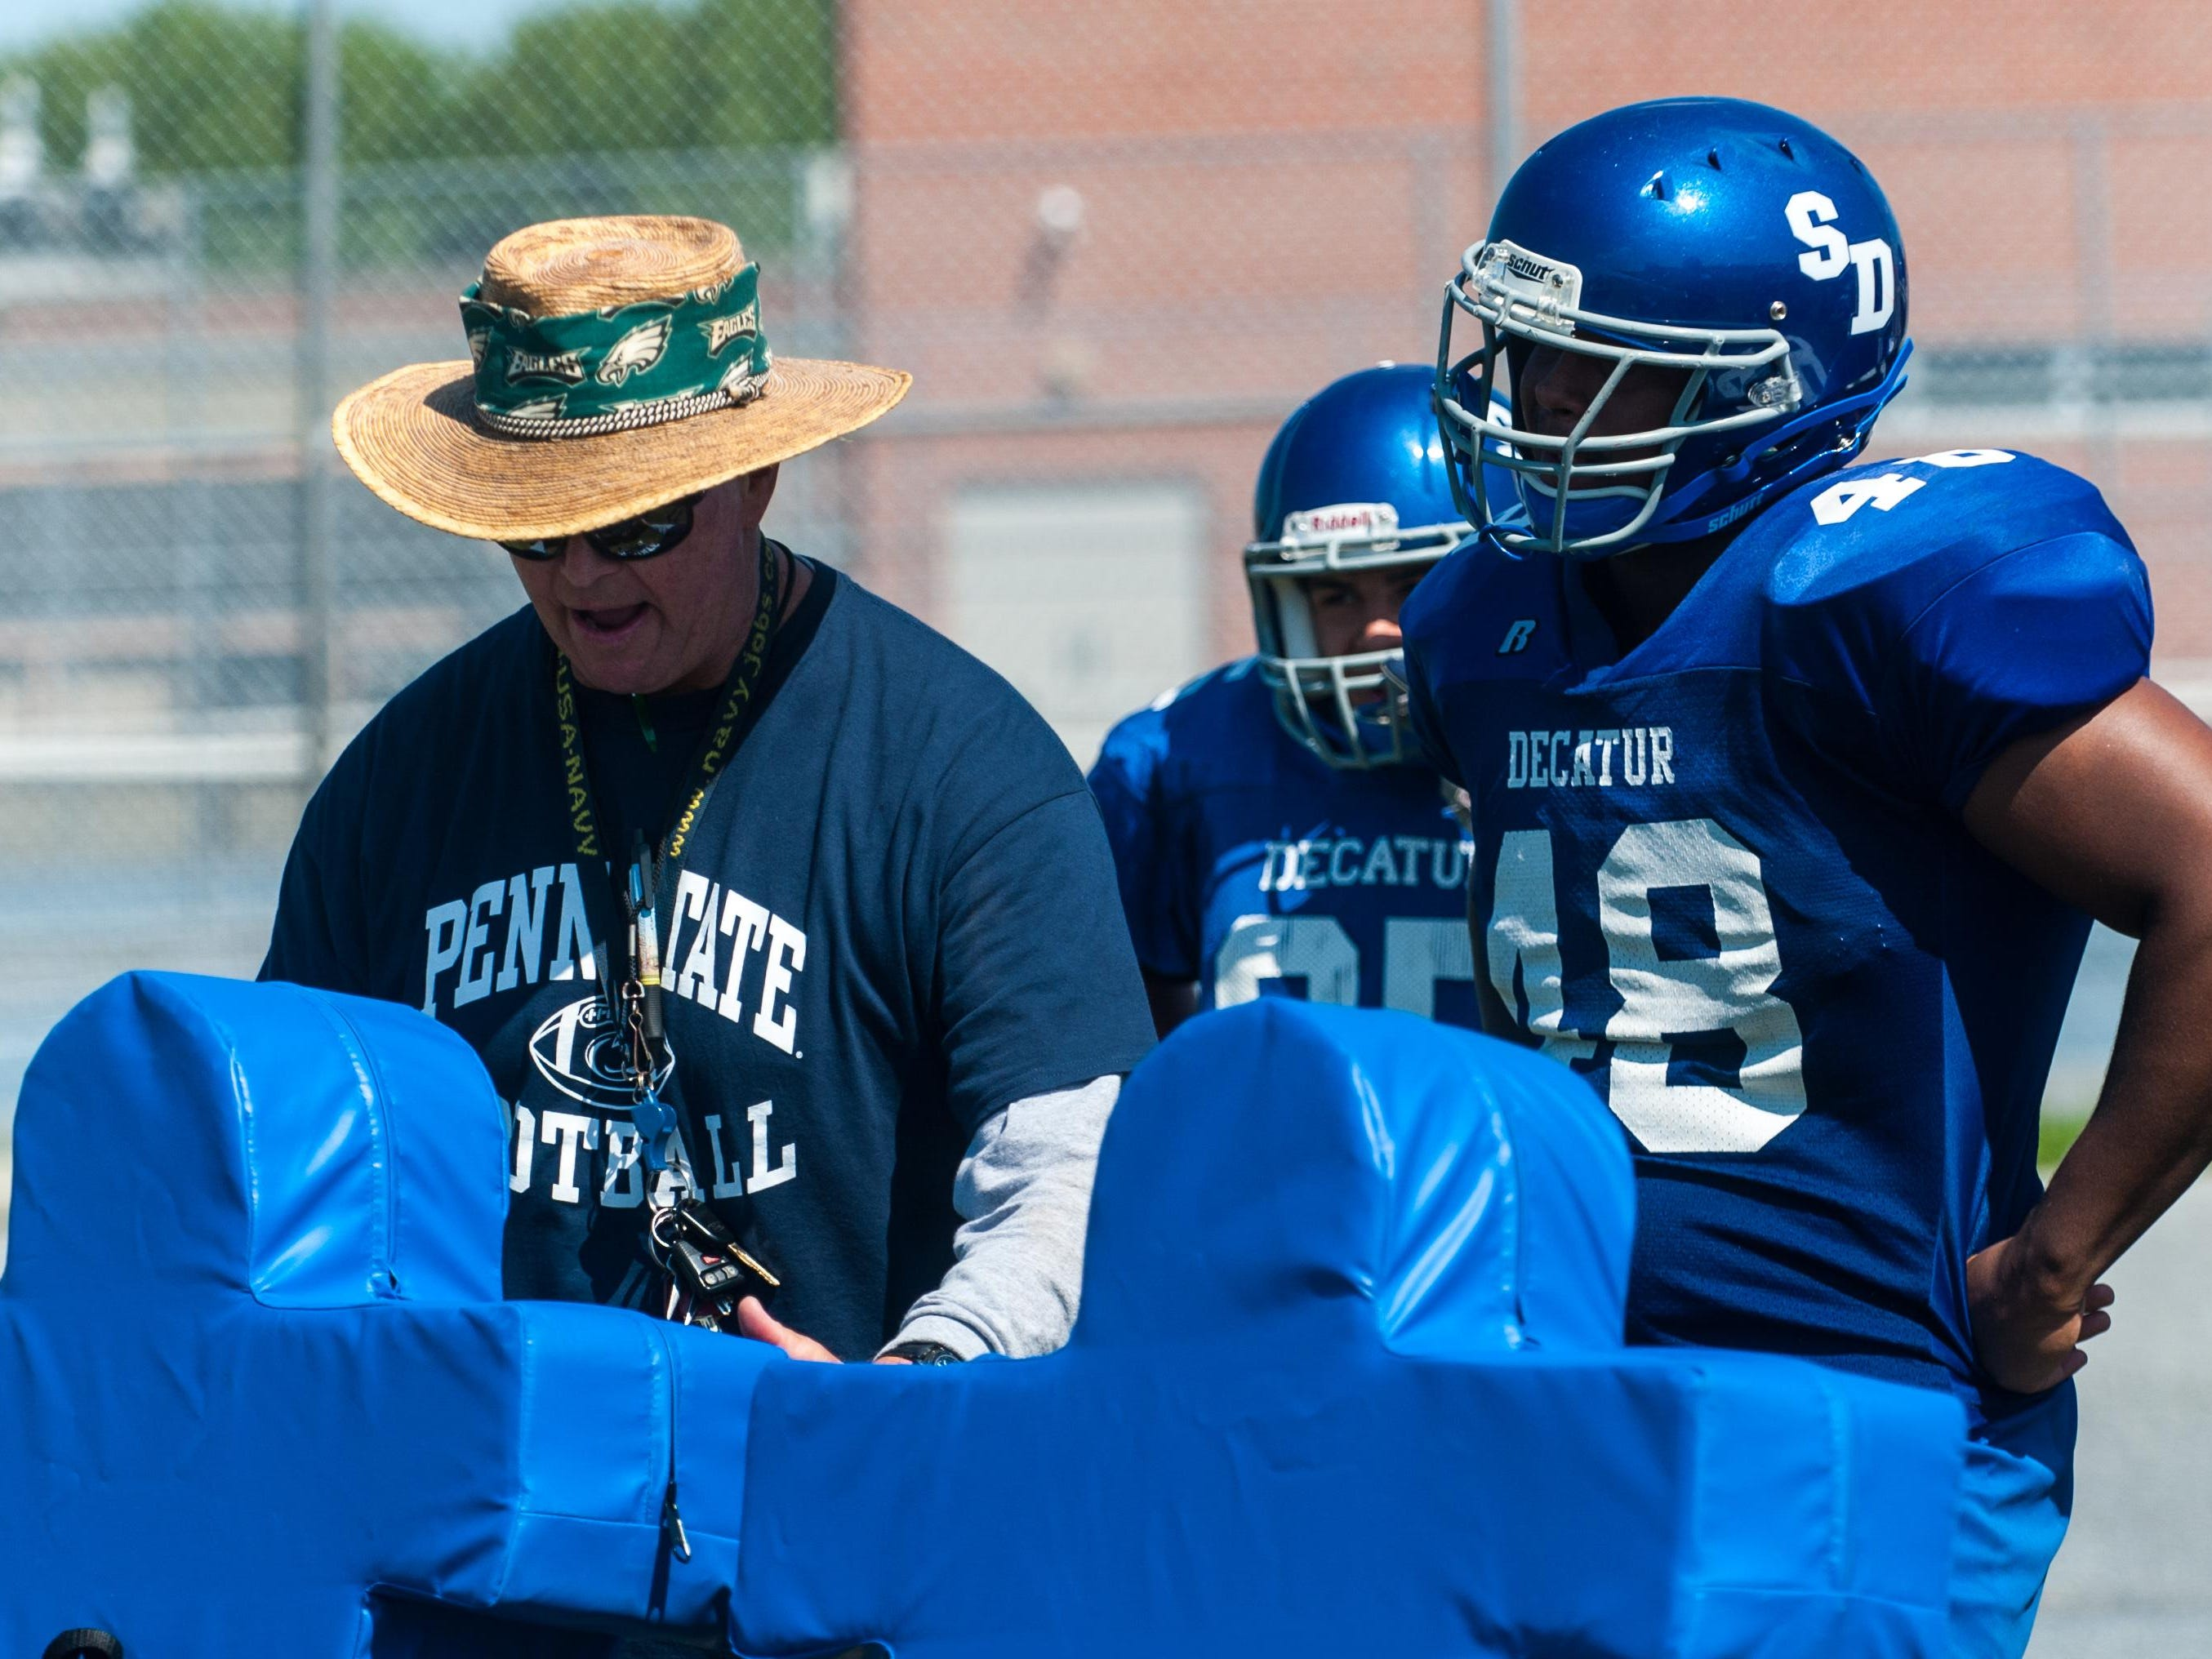 Stephen Decatur head coach Bob Knox works with linemen during practice on Friday morning in Berlin.